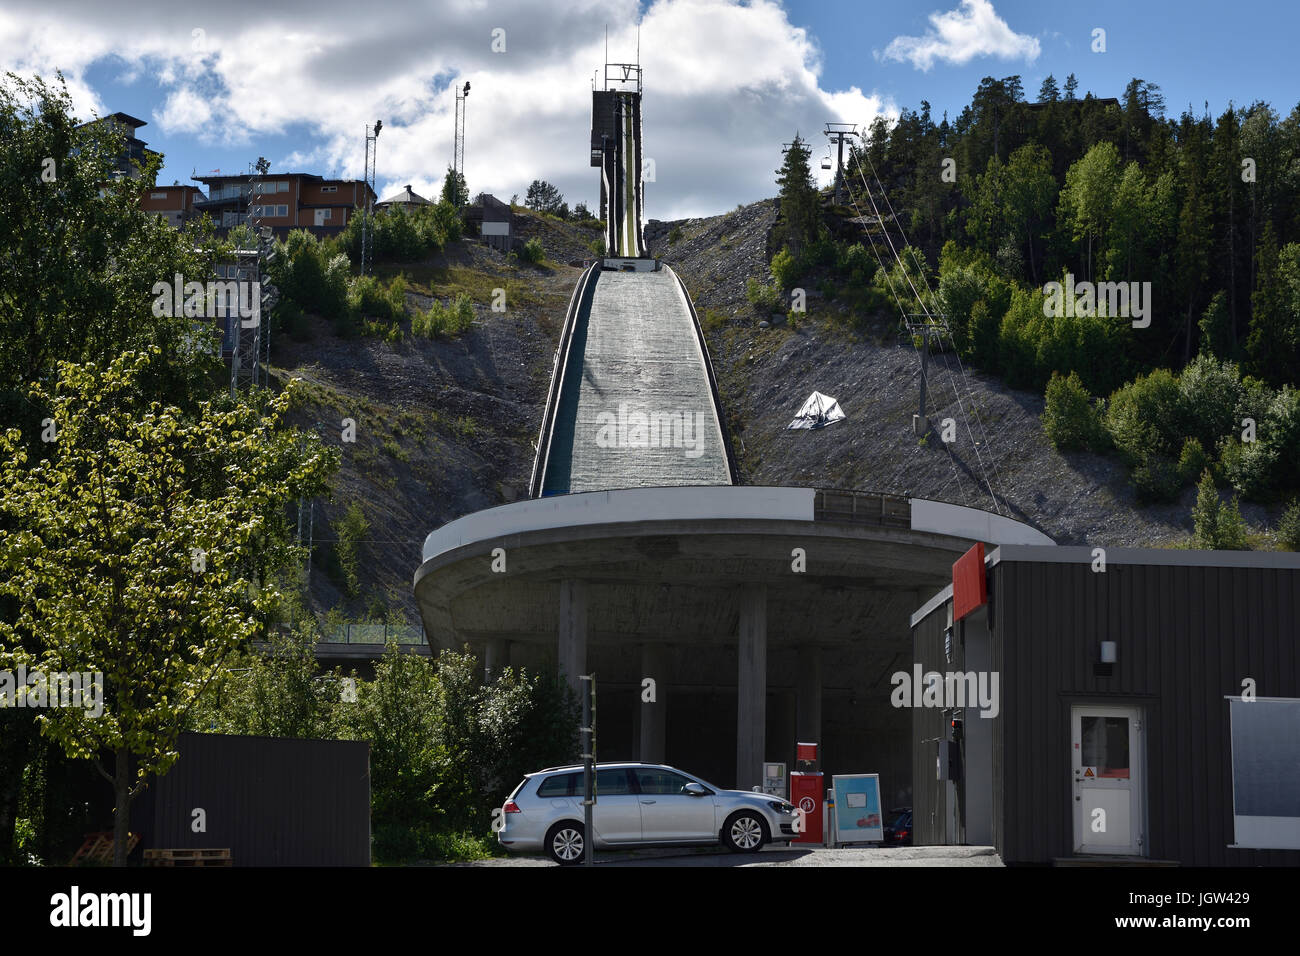 Ski jumping facility in the town Ornskoldsvik in the North of Sweden. - Stock Image